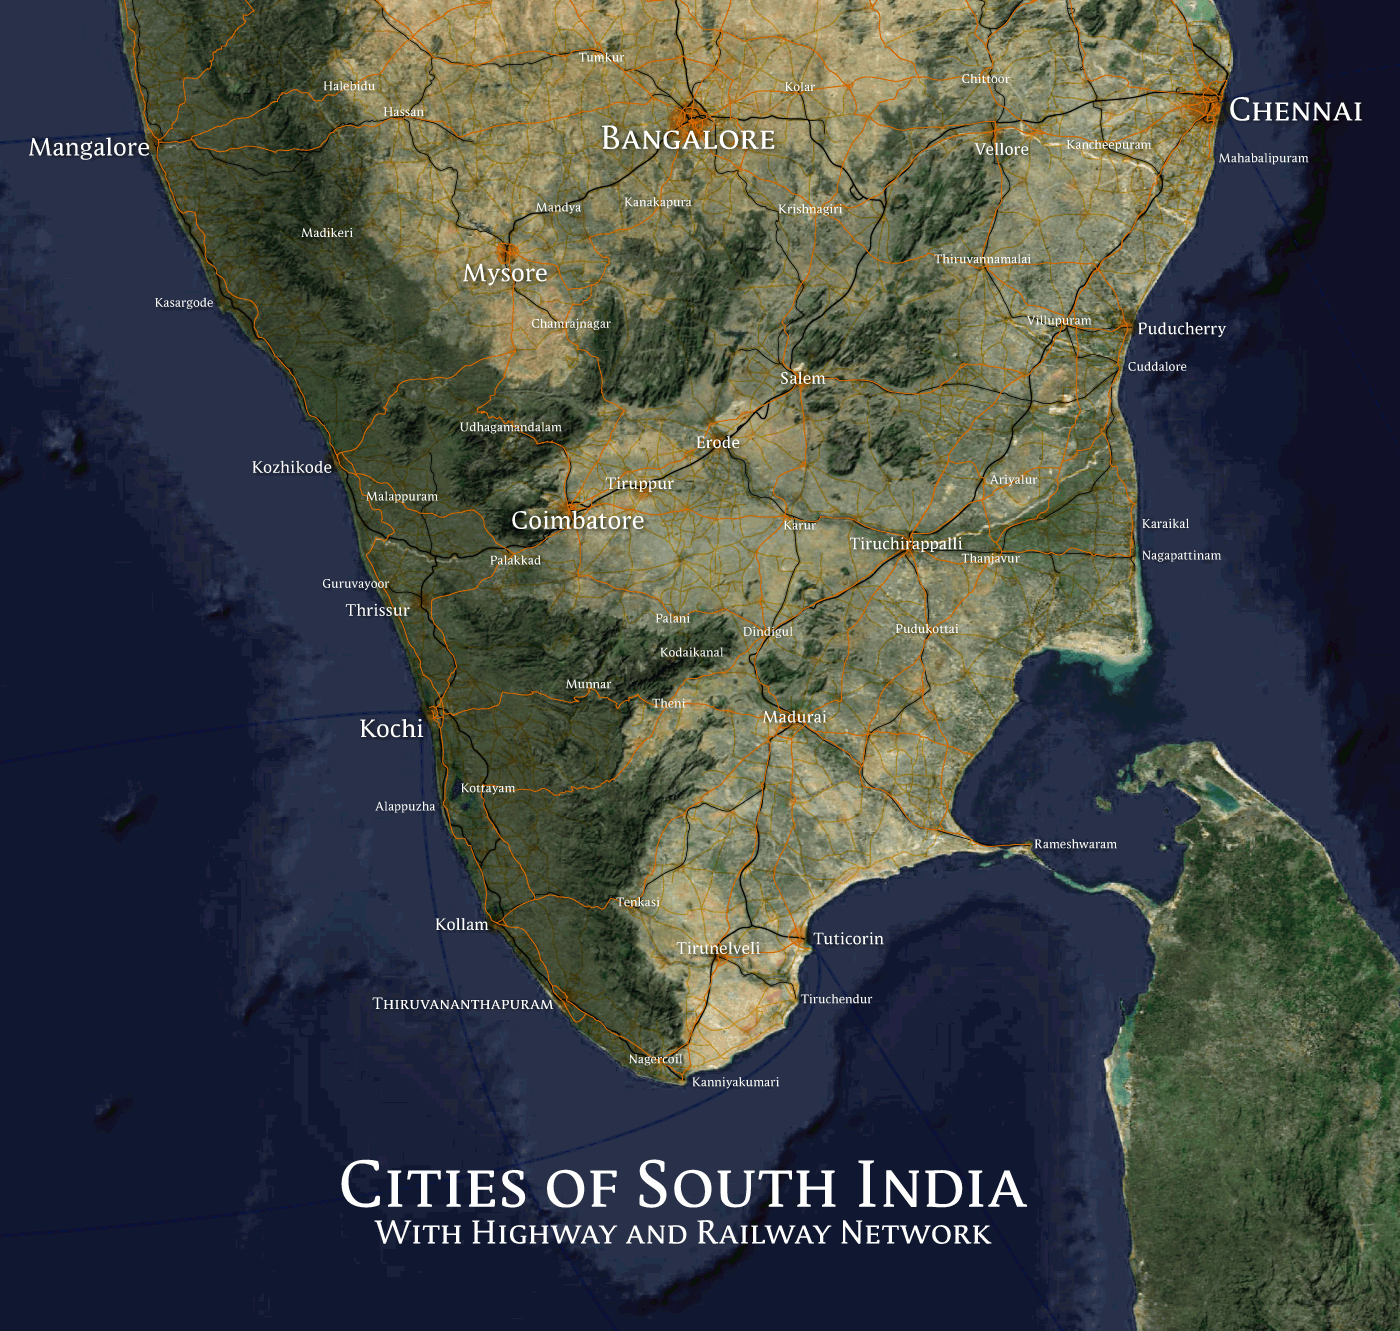 South India Map Images Map of Urban Areas in South